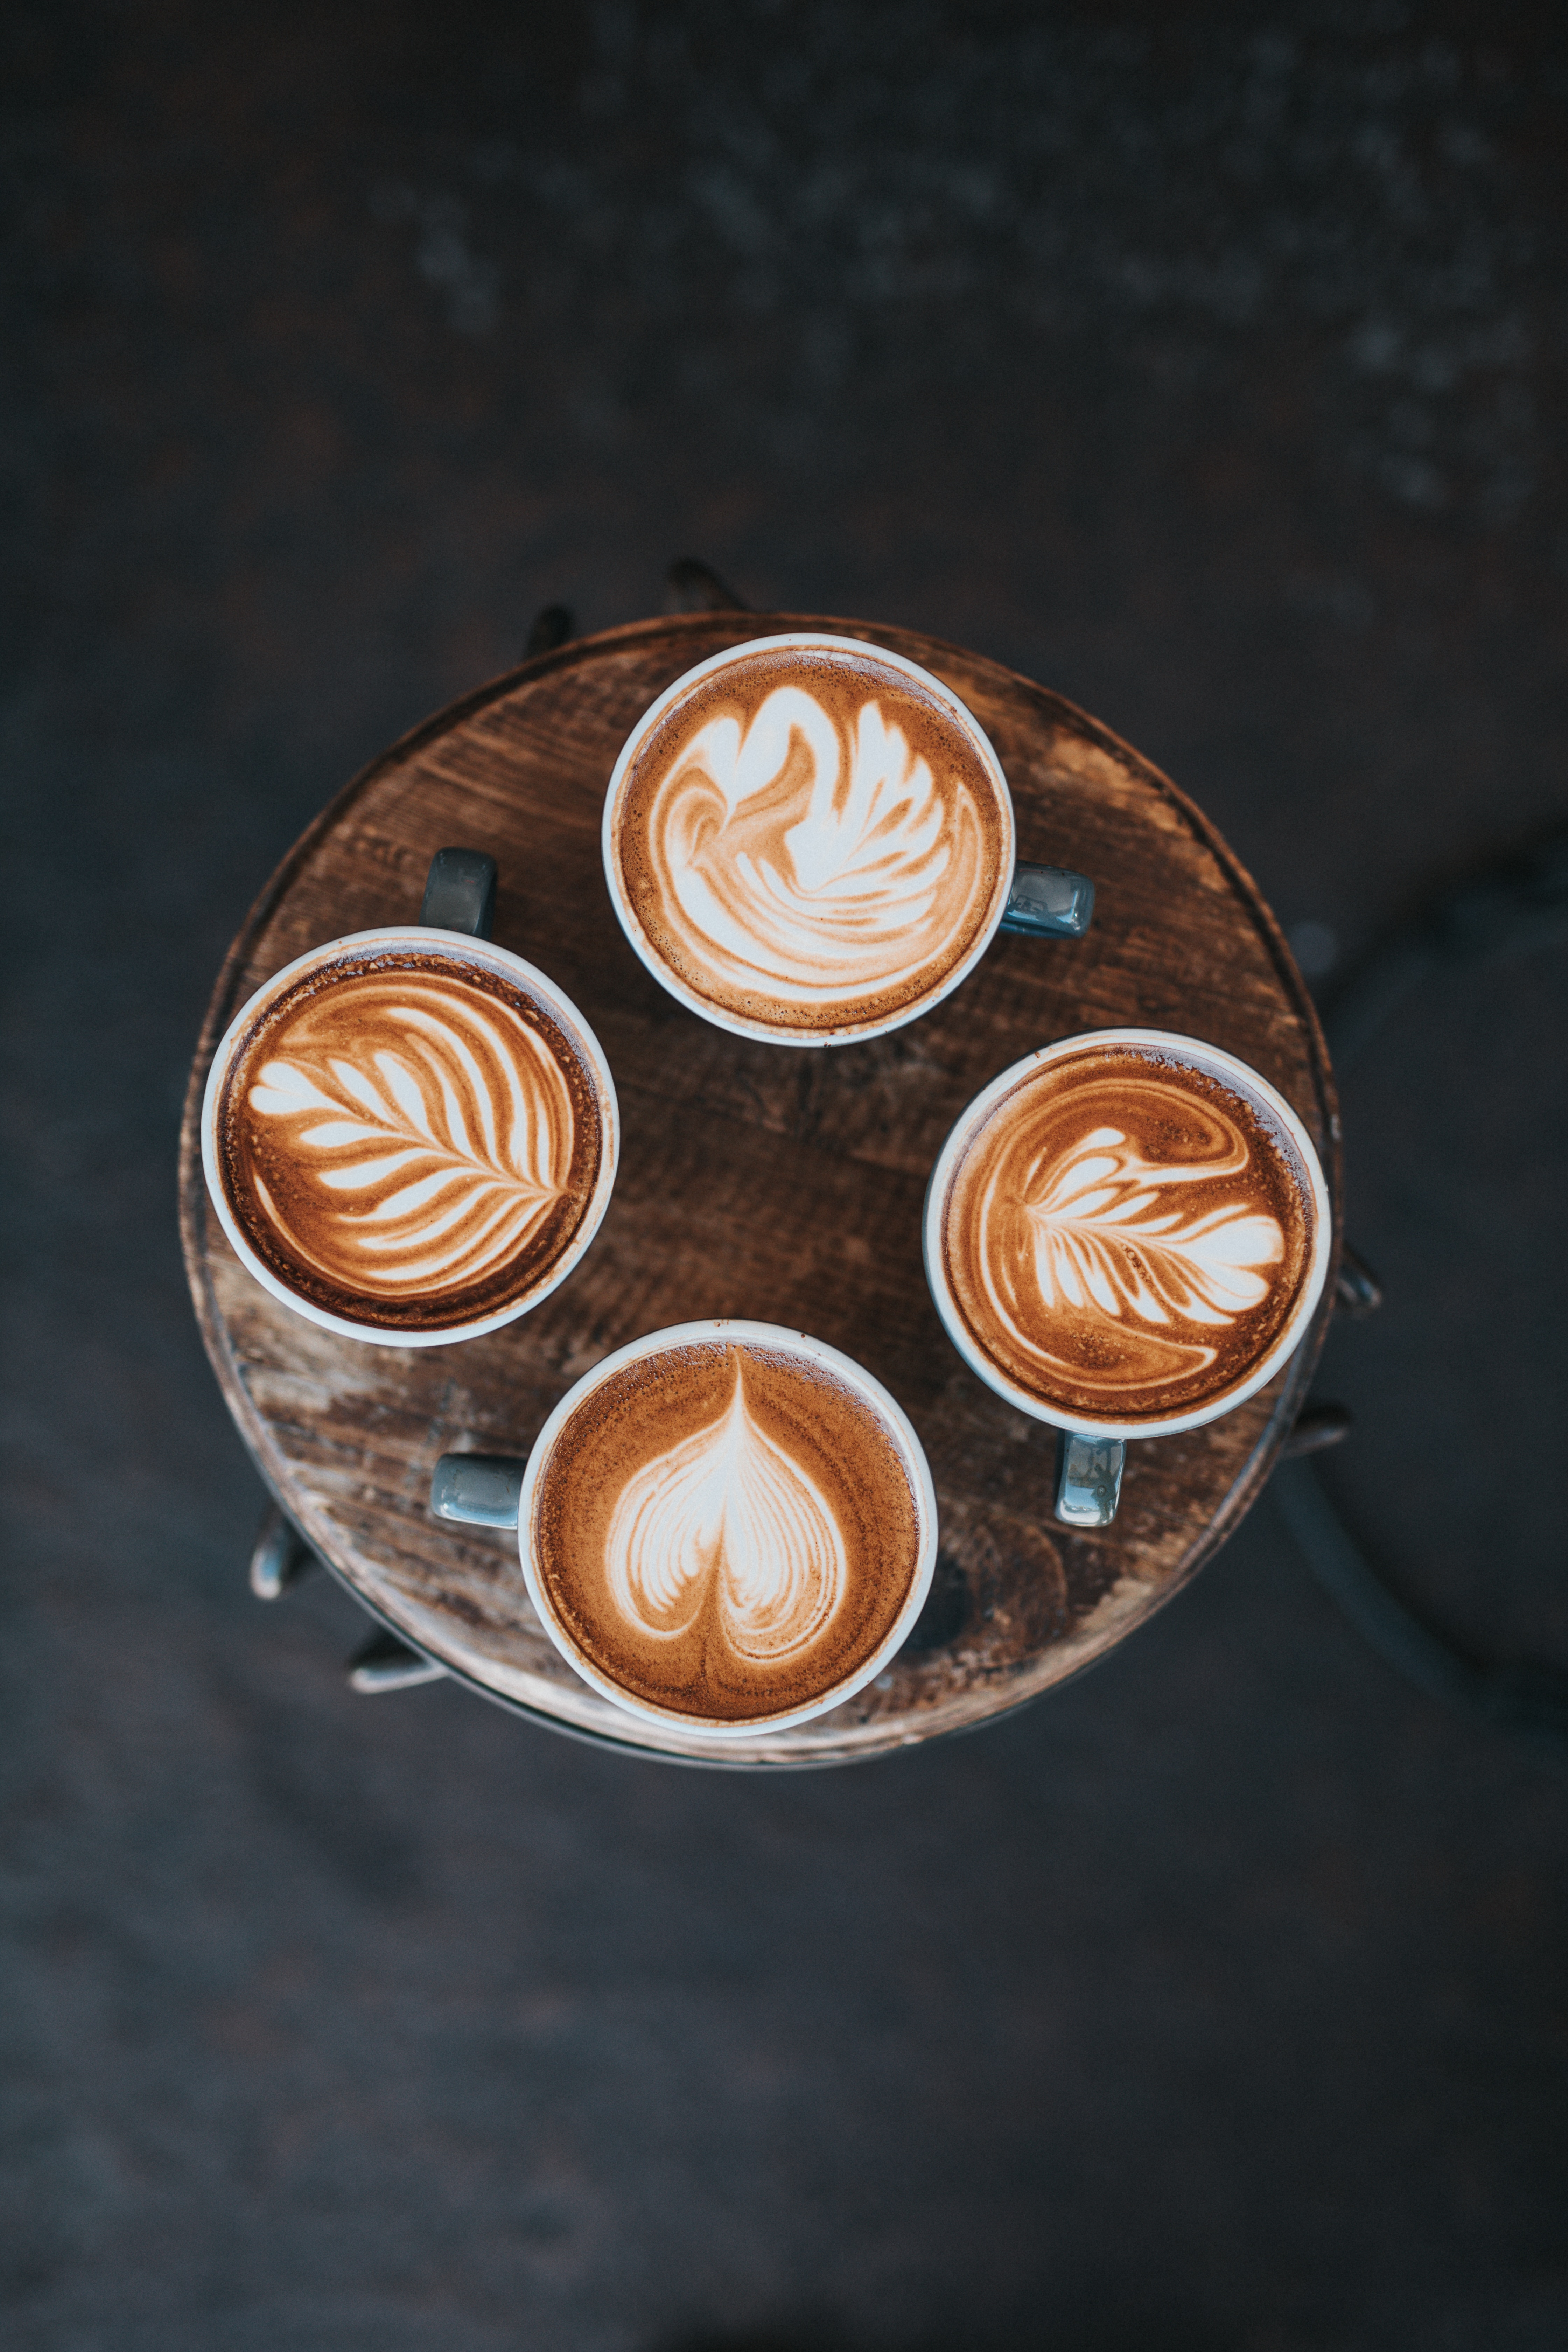 four cappuccinos with different designs in the foam